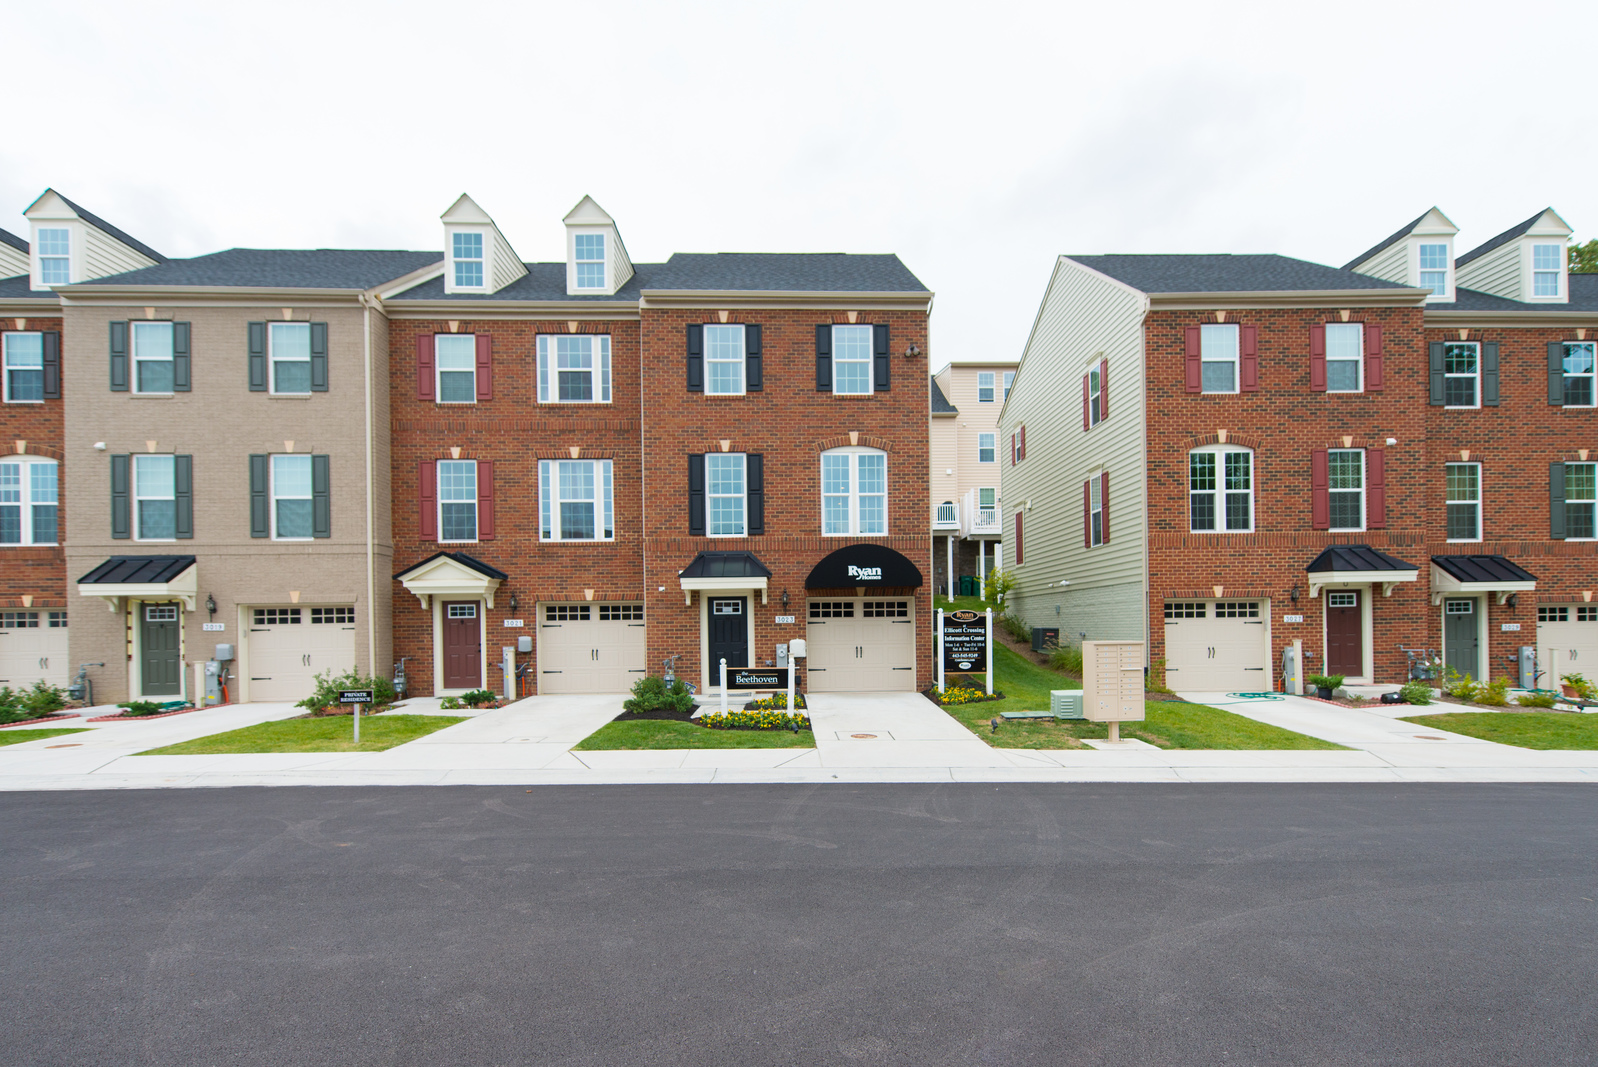 New Homes For Sale At Rockdale Village In Windsor Mill Md Within